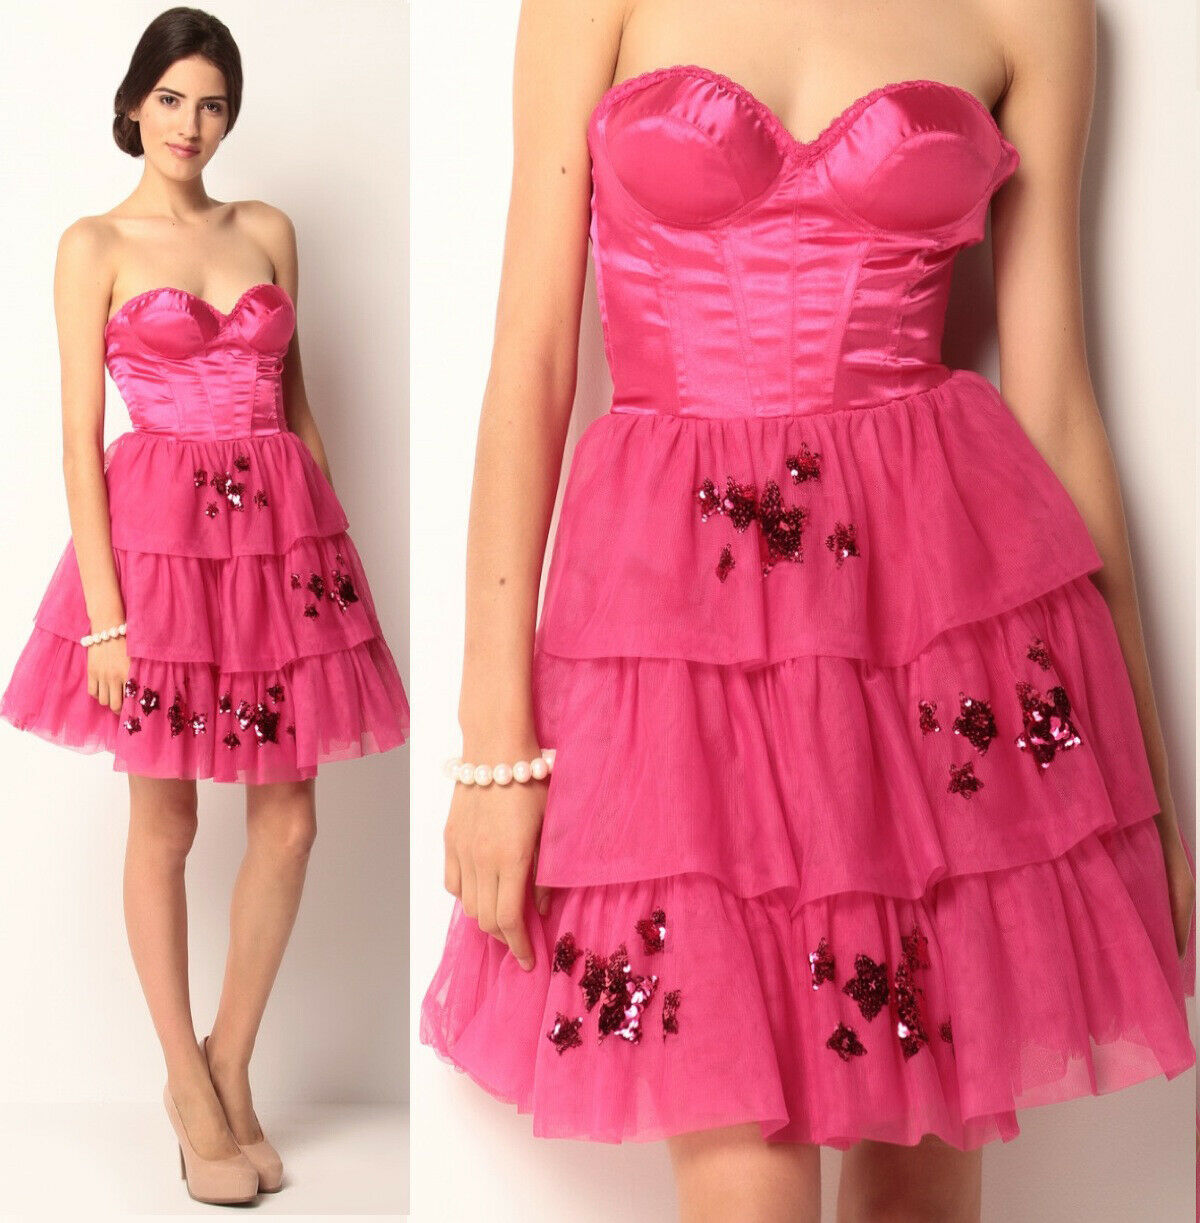 Primary image for $468 Betsey Johnson Evening Hollywood Hills Fuchsia Corset Bustier Tulle Dress 2